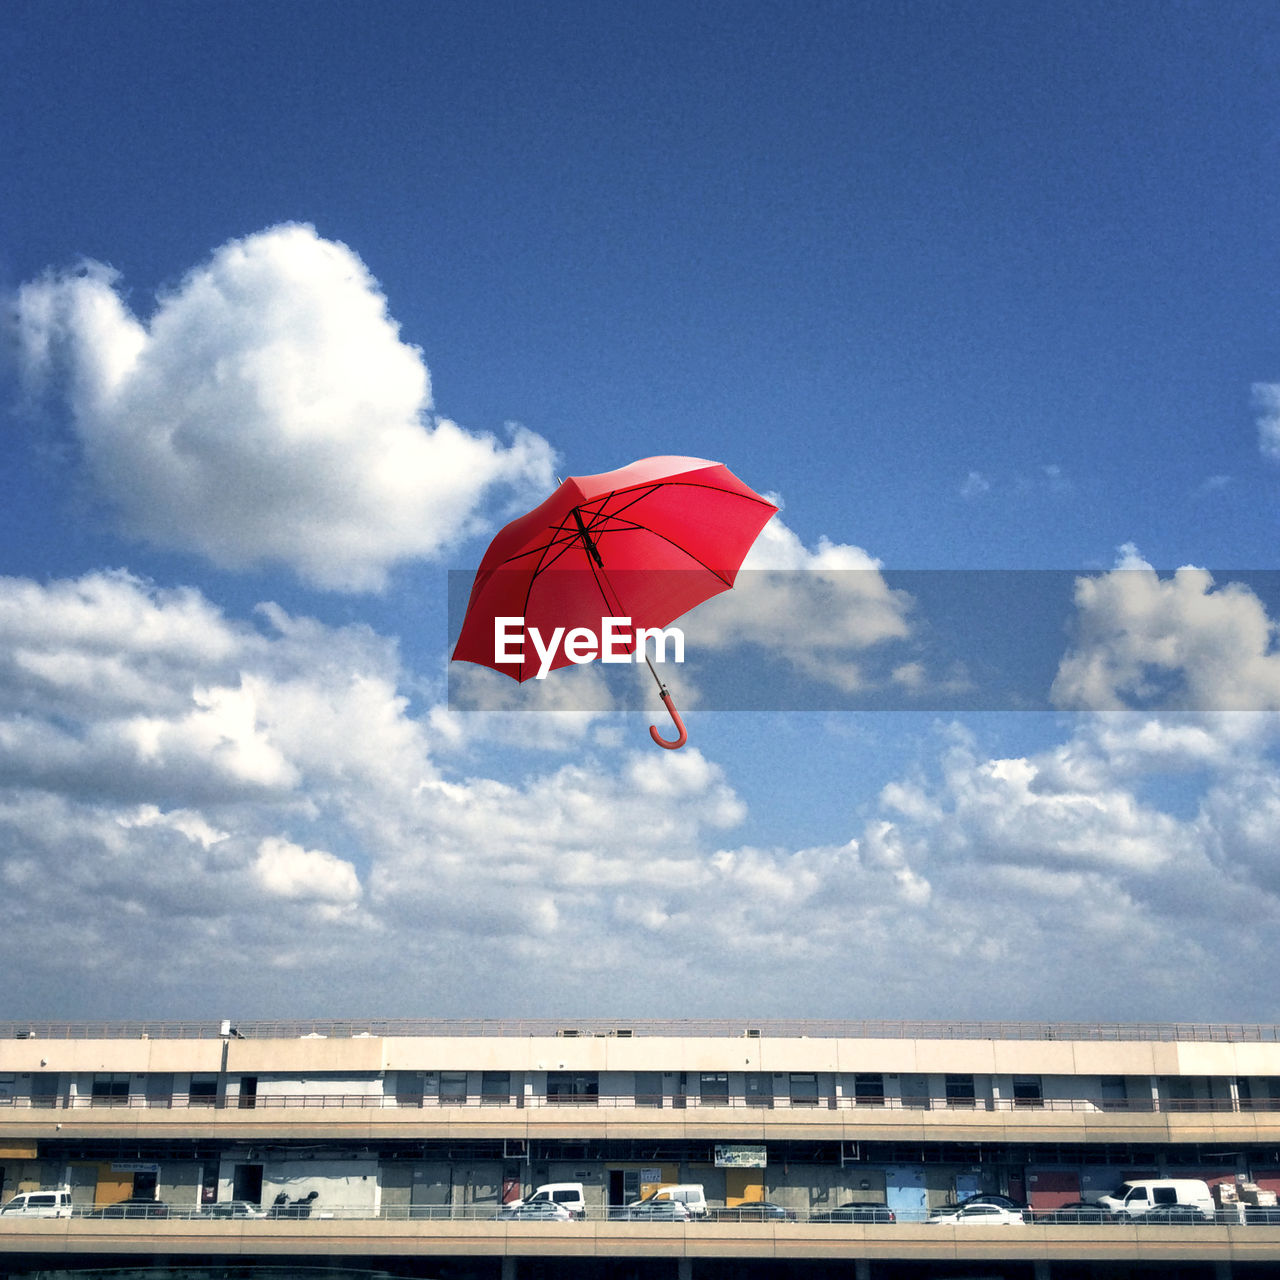 sky, cloud - sky, day, nature, water, red, protection, transportation, architecture, built structure, sport, outdoors, umbrella, low angle view, bridge, mid-air, flying, adventure